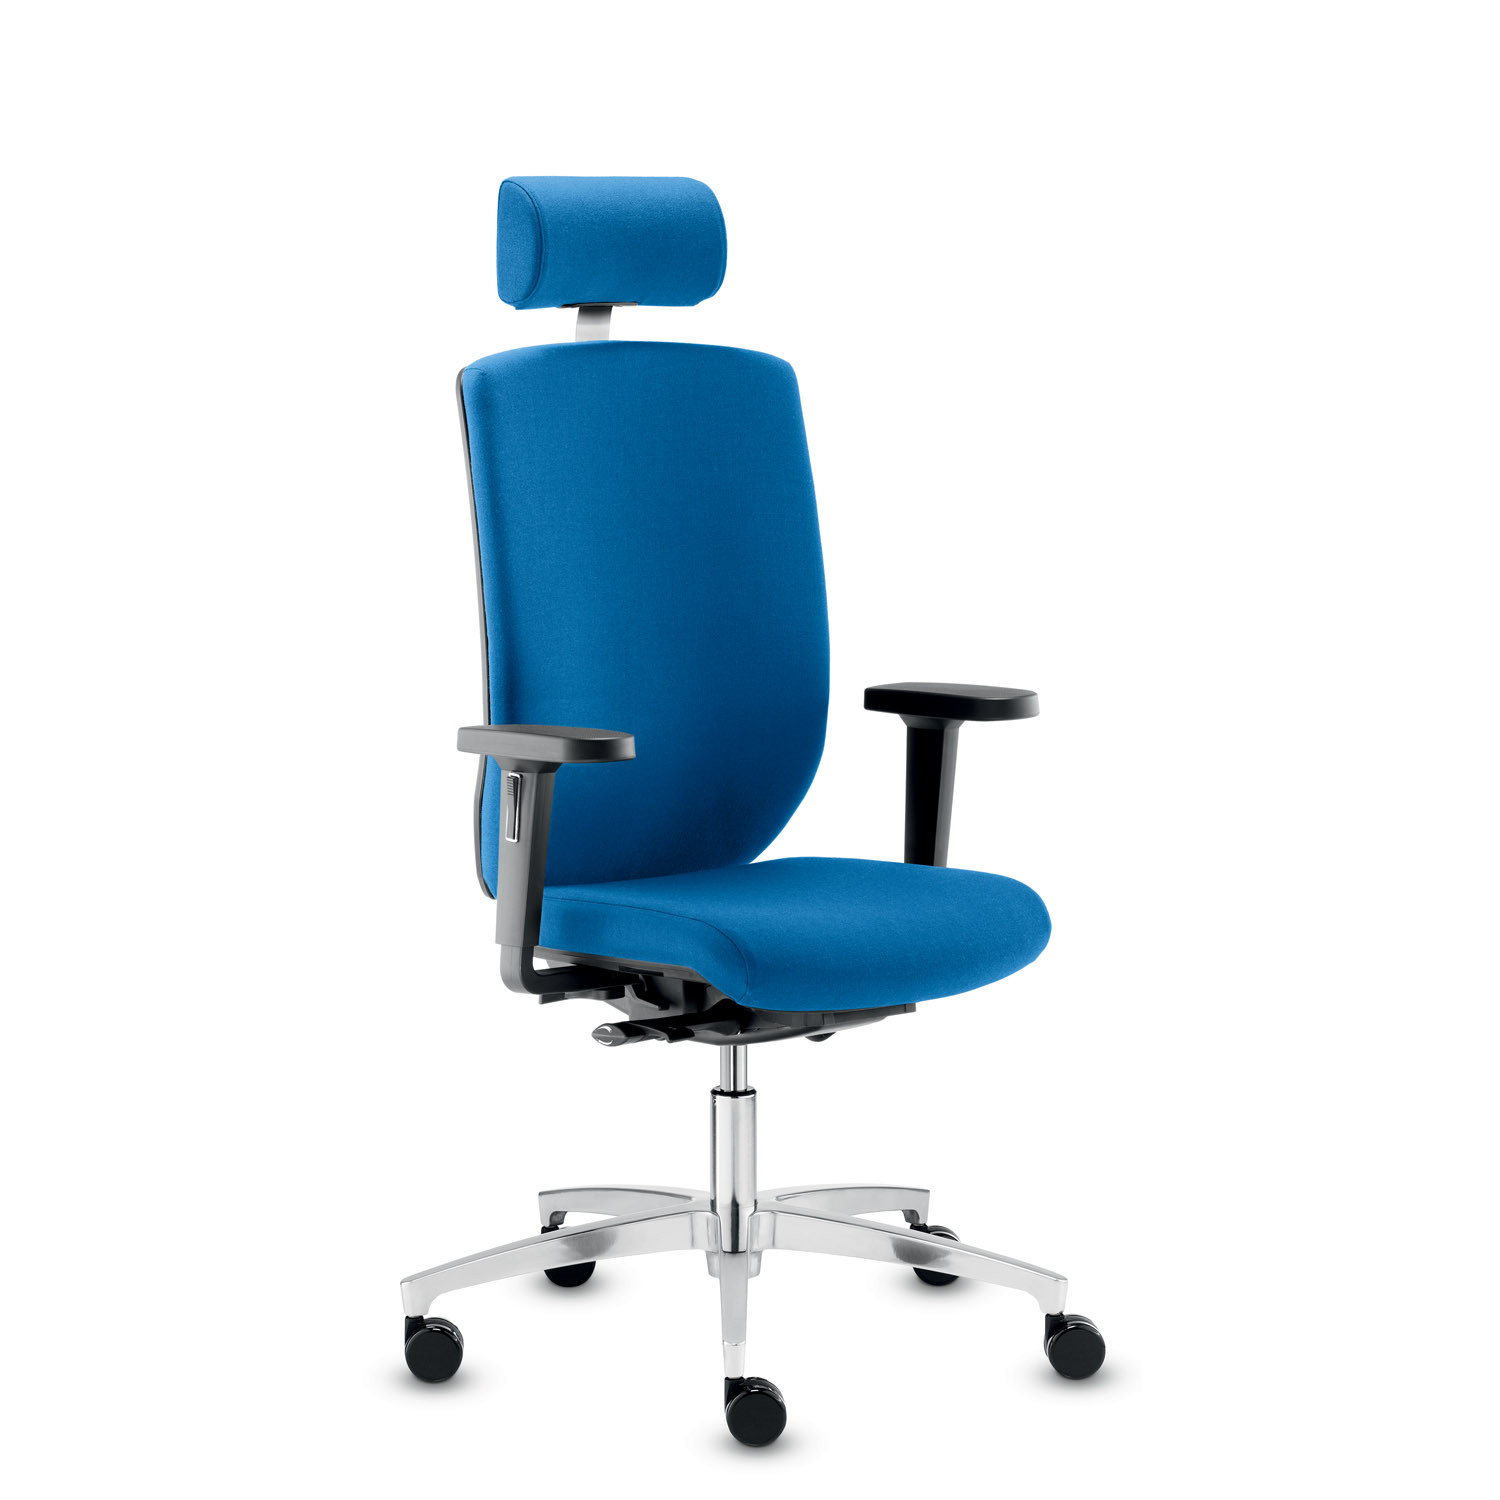 Bionic Ergonomic Office Chair with Neckrest